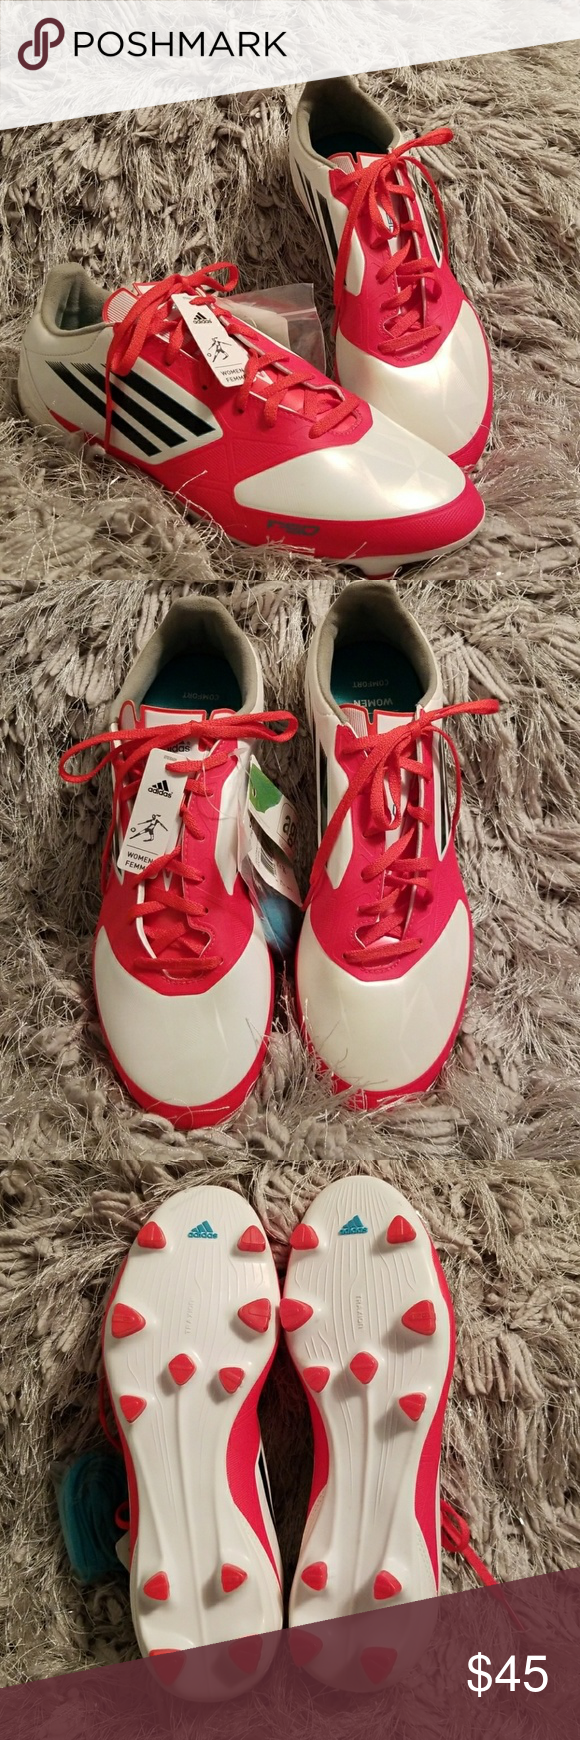 reputable site 4cb58 e3906 Spotted while shopping on Poshmark  Adidas F-30 Womans Soccer Cleats ⚽ !   poshmark  fashion  shopping  style  adidas  Shoes